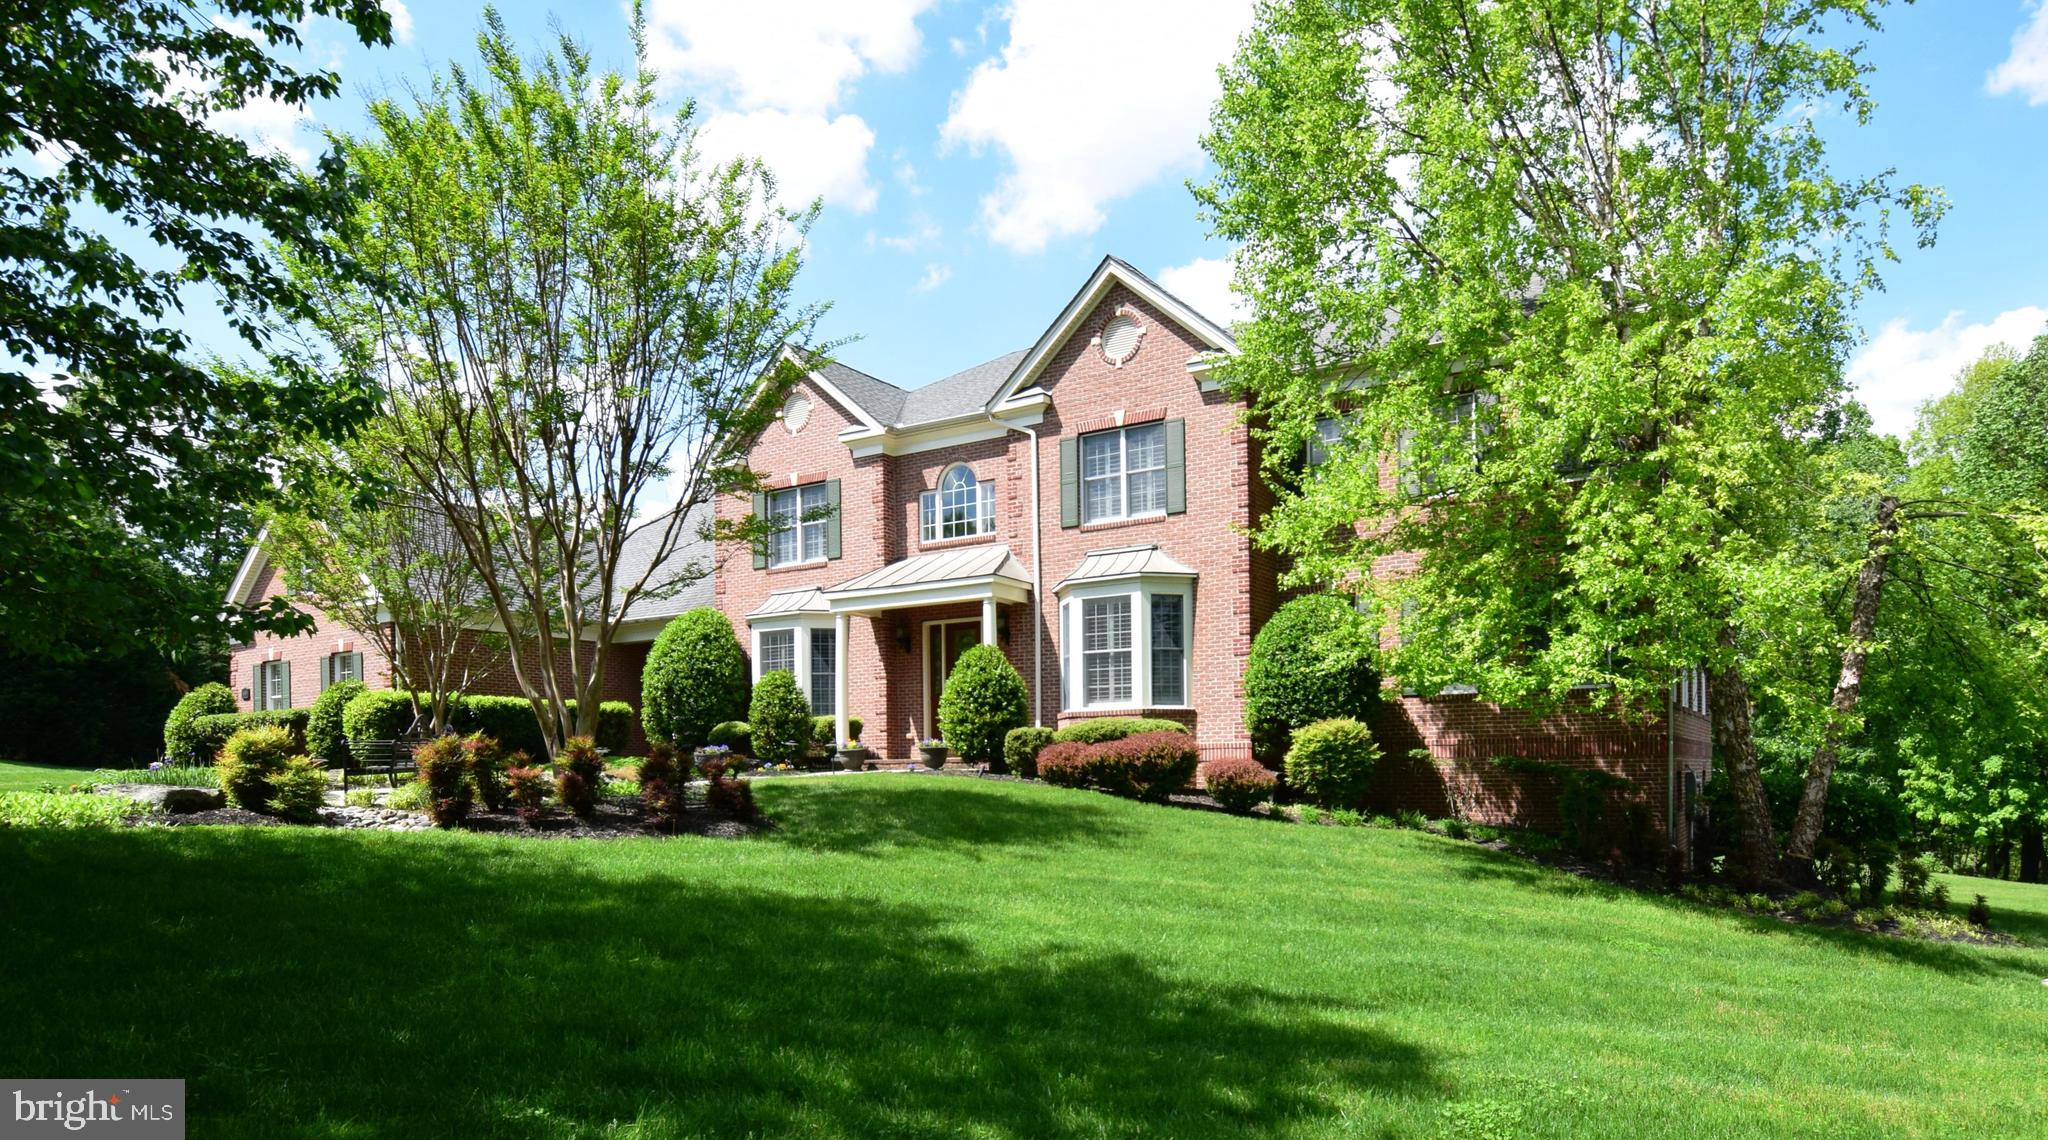 14318 ROXBURY LAKE DRIVE, GLENELG, MD 21737